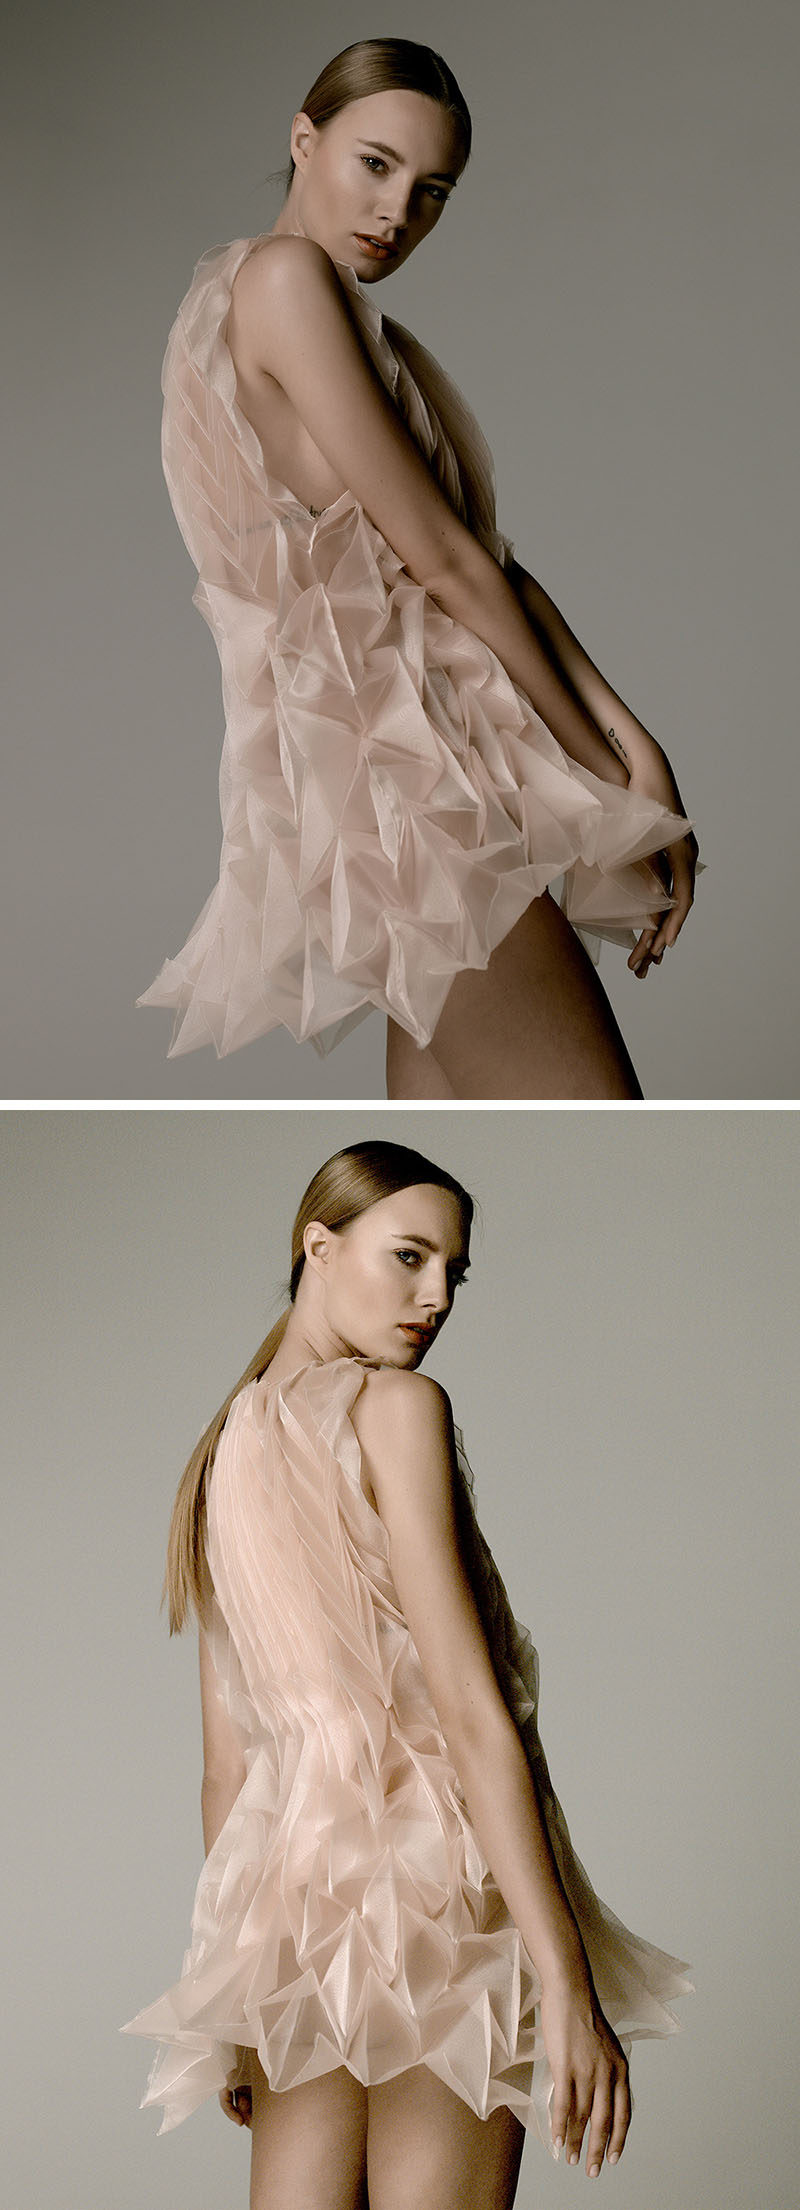 This origami-like champagne colored chiffon dress was created by steaming the fabric in a reusable paper mold.